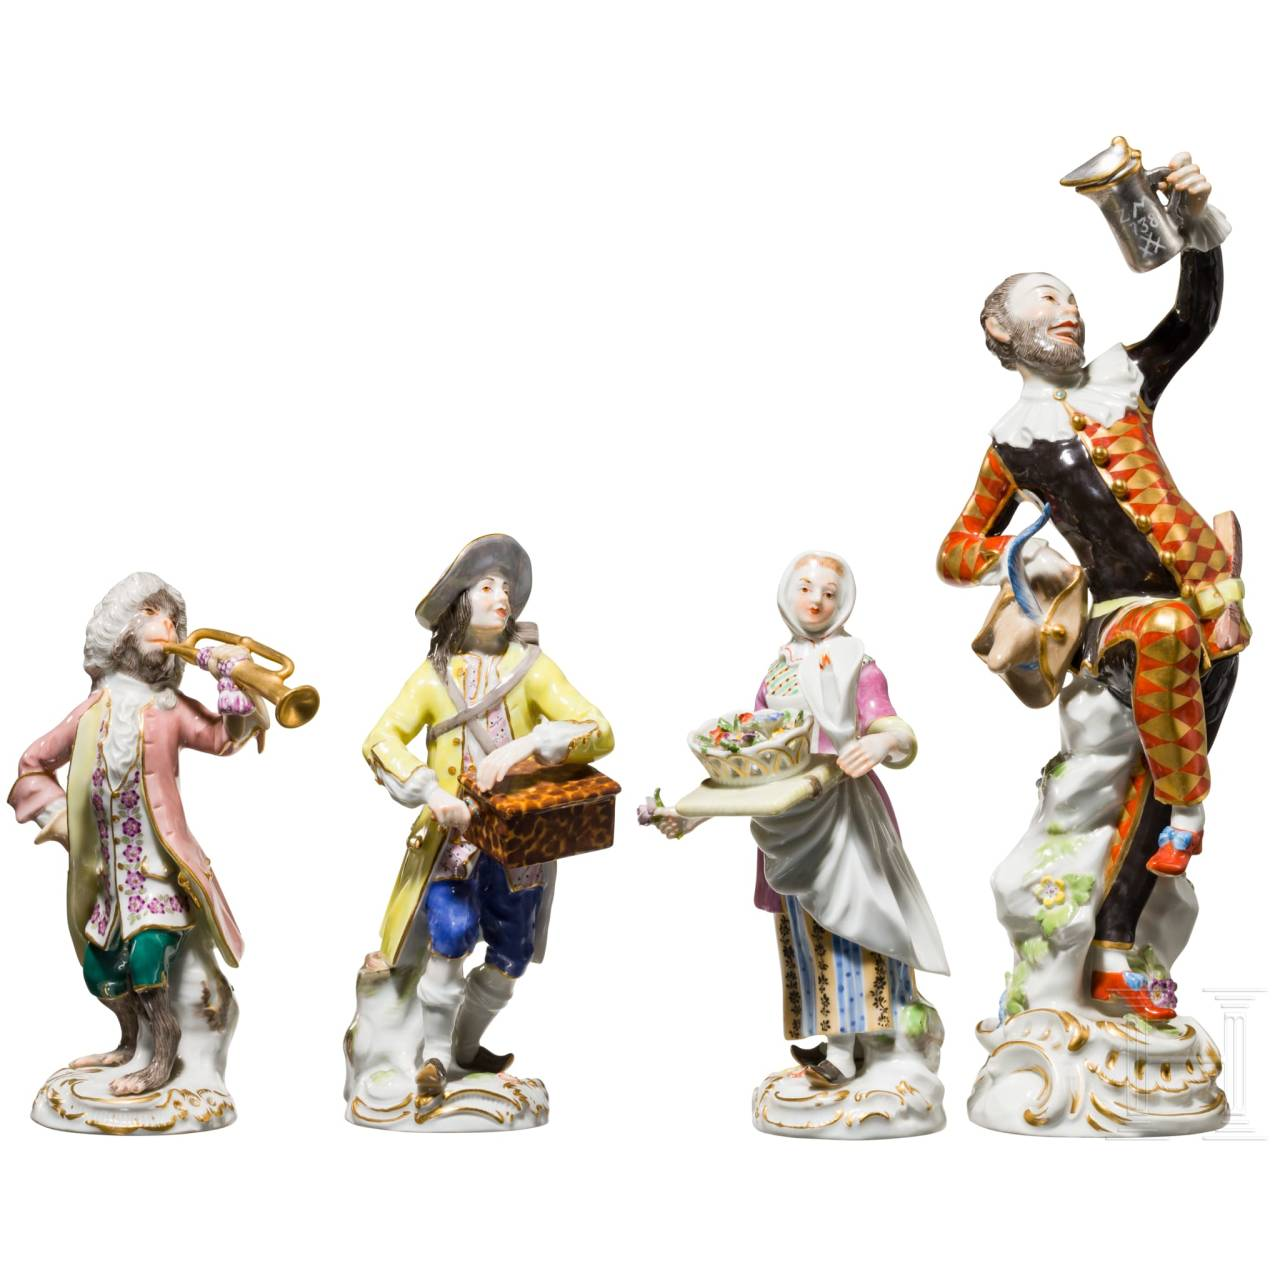 Four figures of the Meissen porcelain manufactory, 20th century